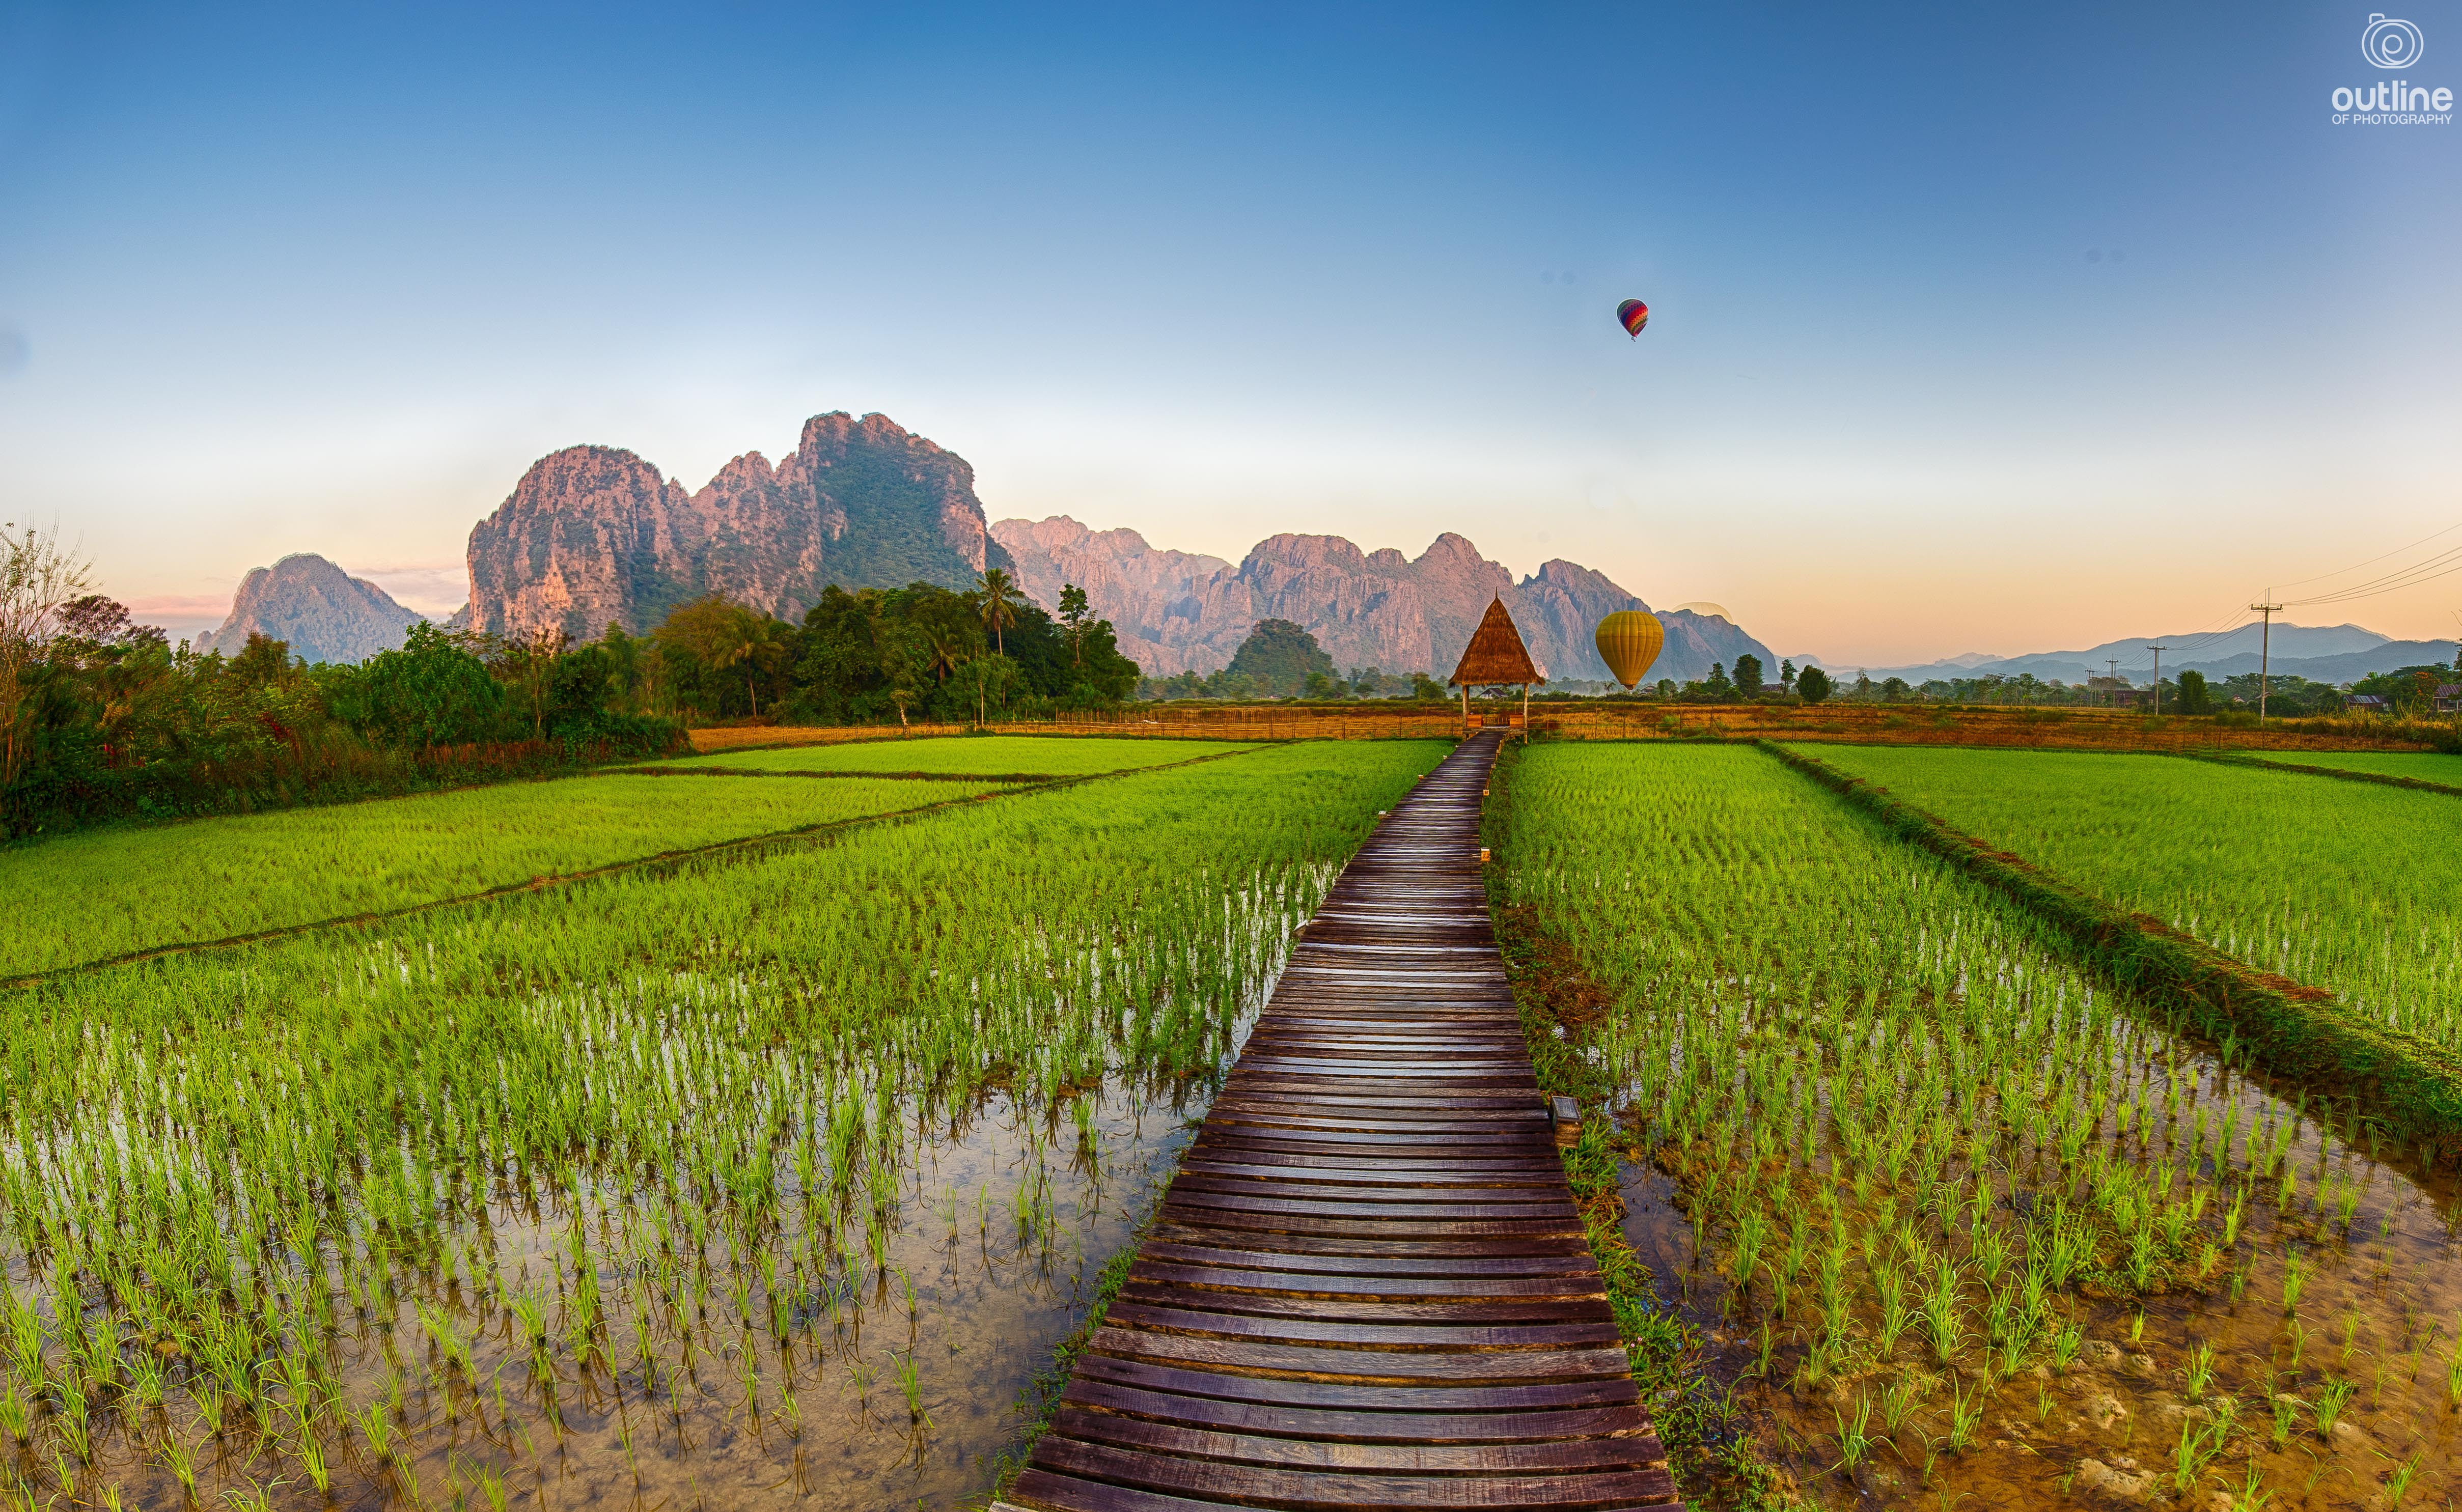 VangVieng_outlineofphotography